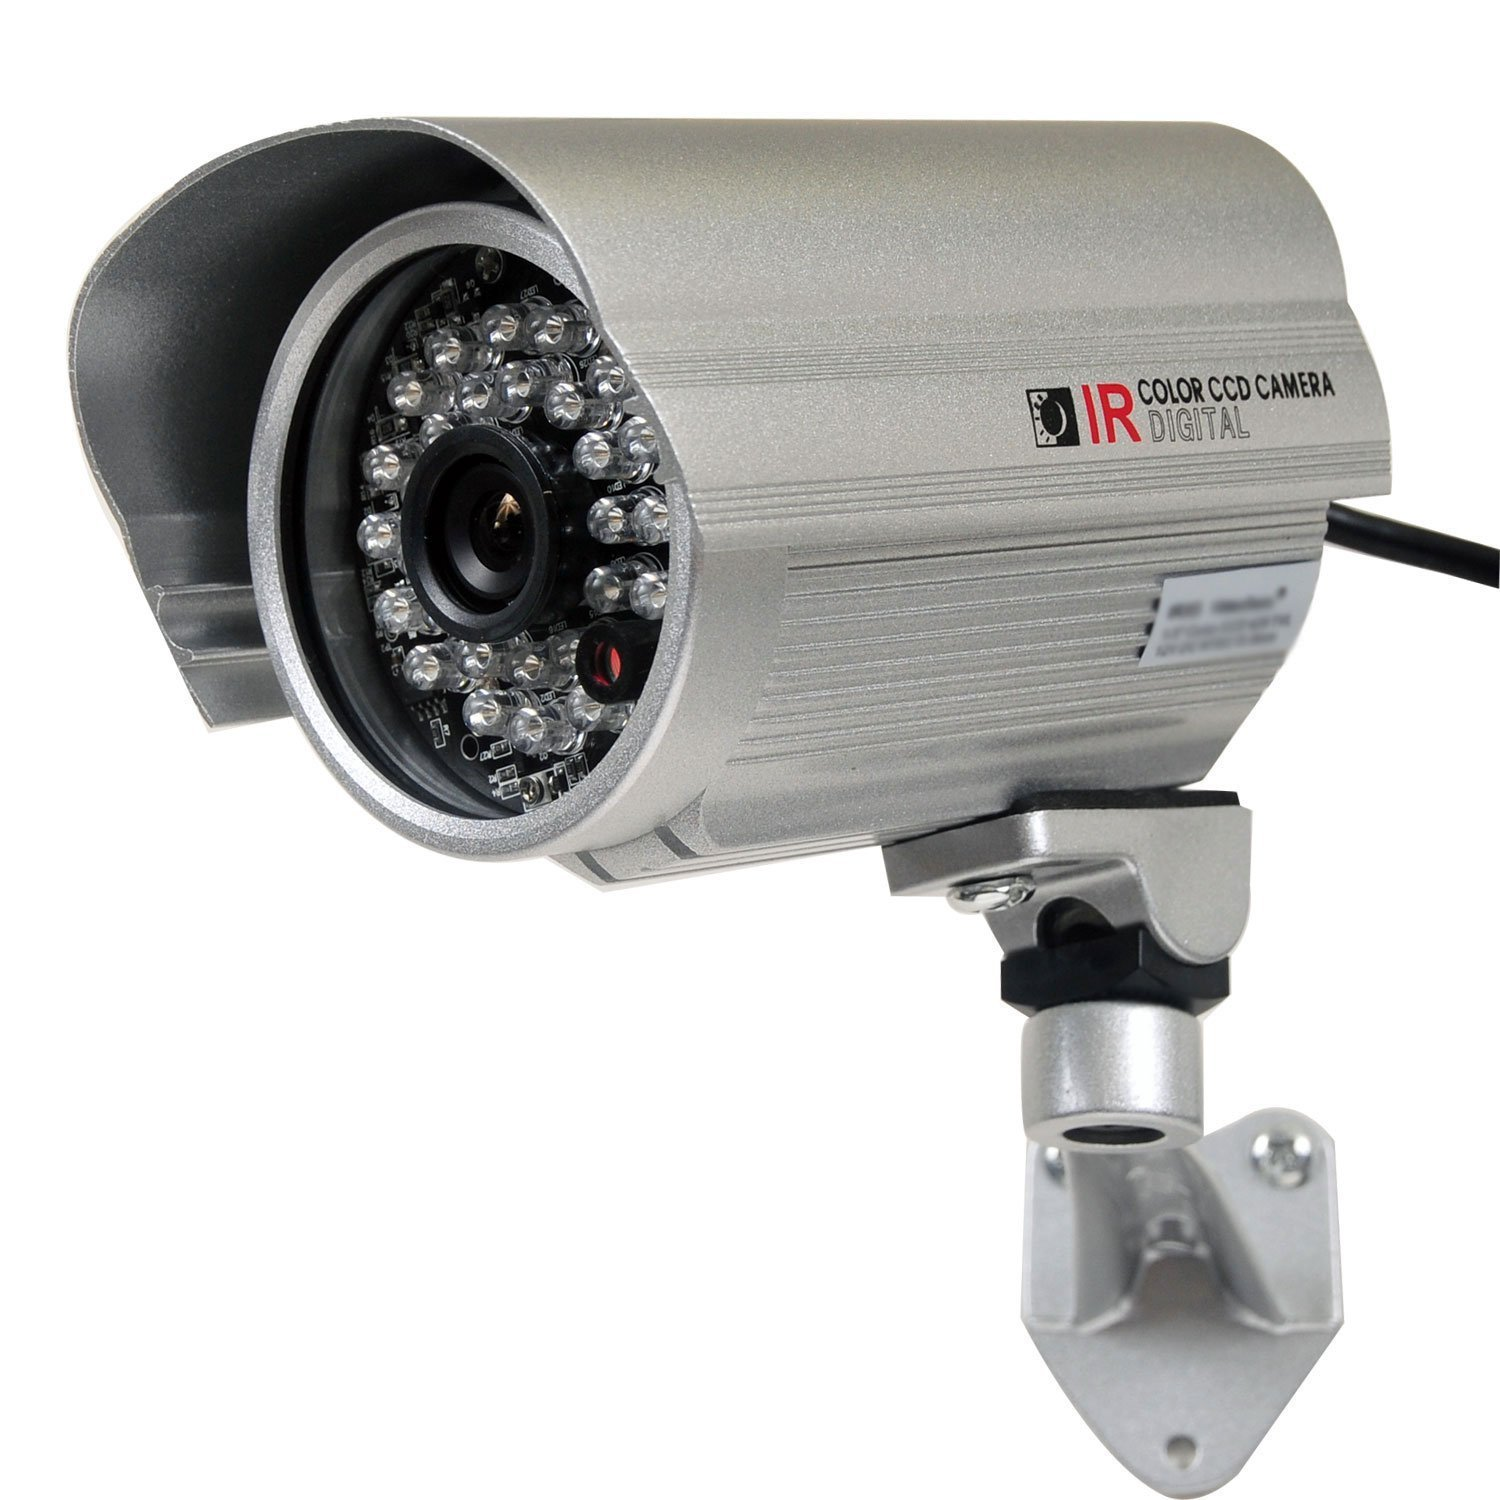 Amazon.com : VideoSecu Bullet Security Camera 700TVL Built-in 1/3 ...